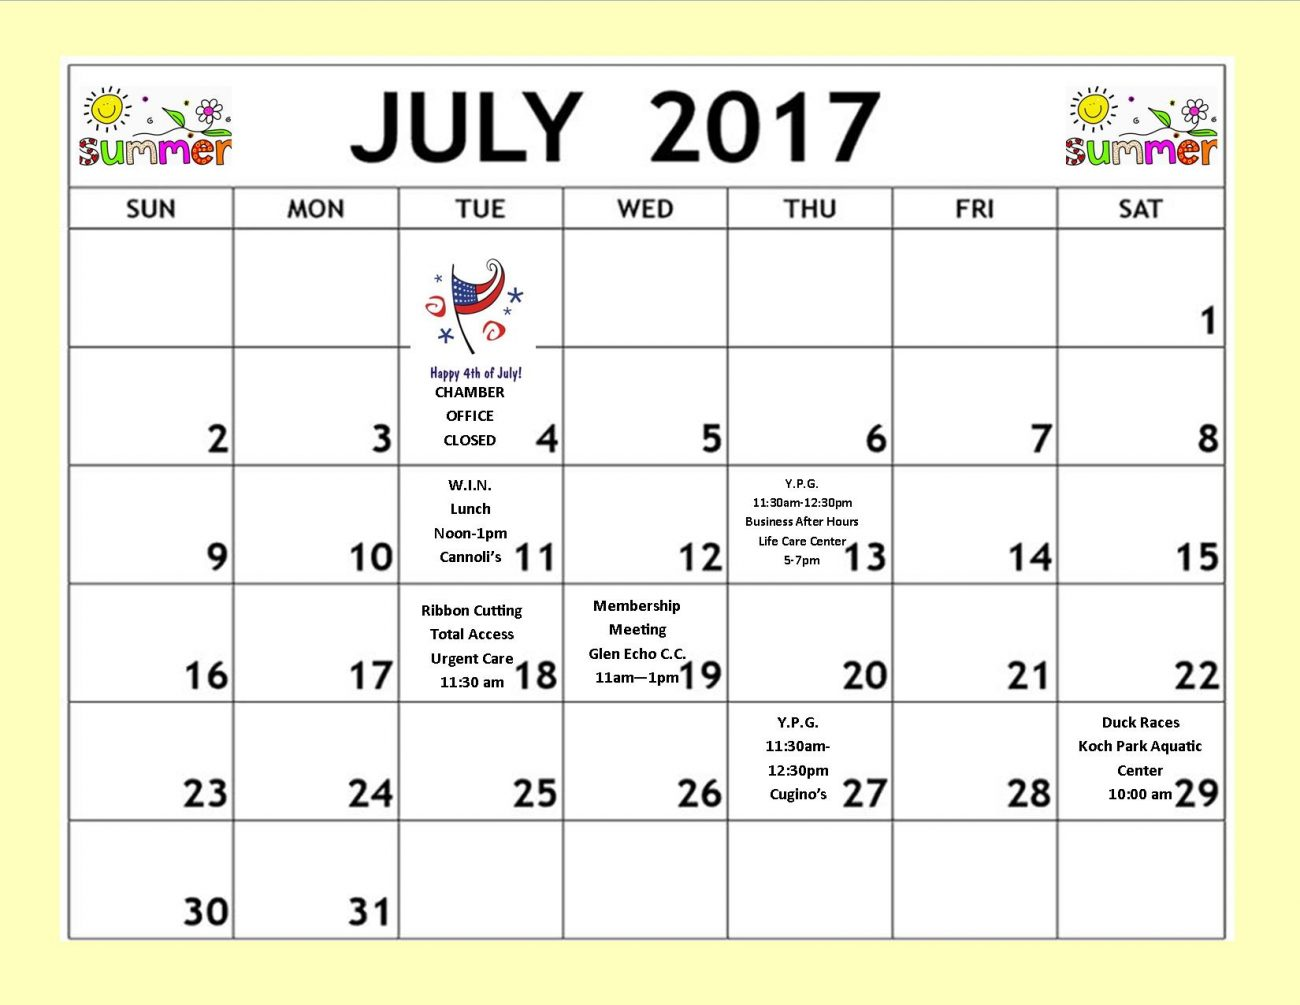 July 2017 Calendar for newsletter - Greater North County